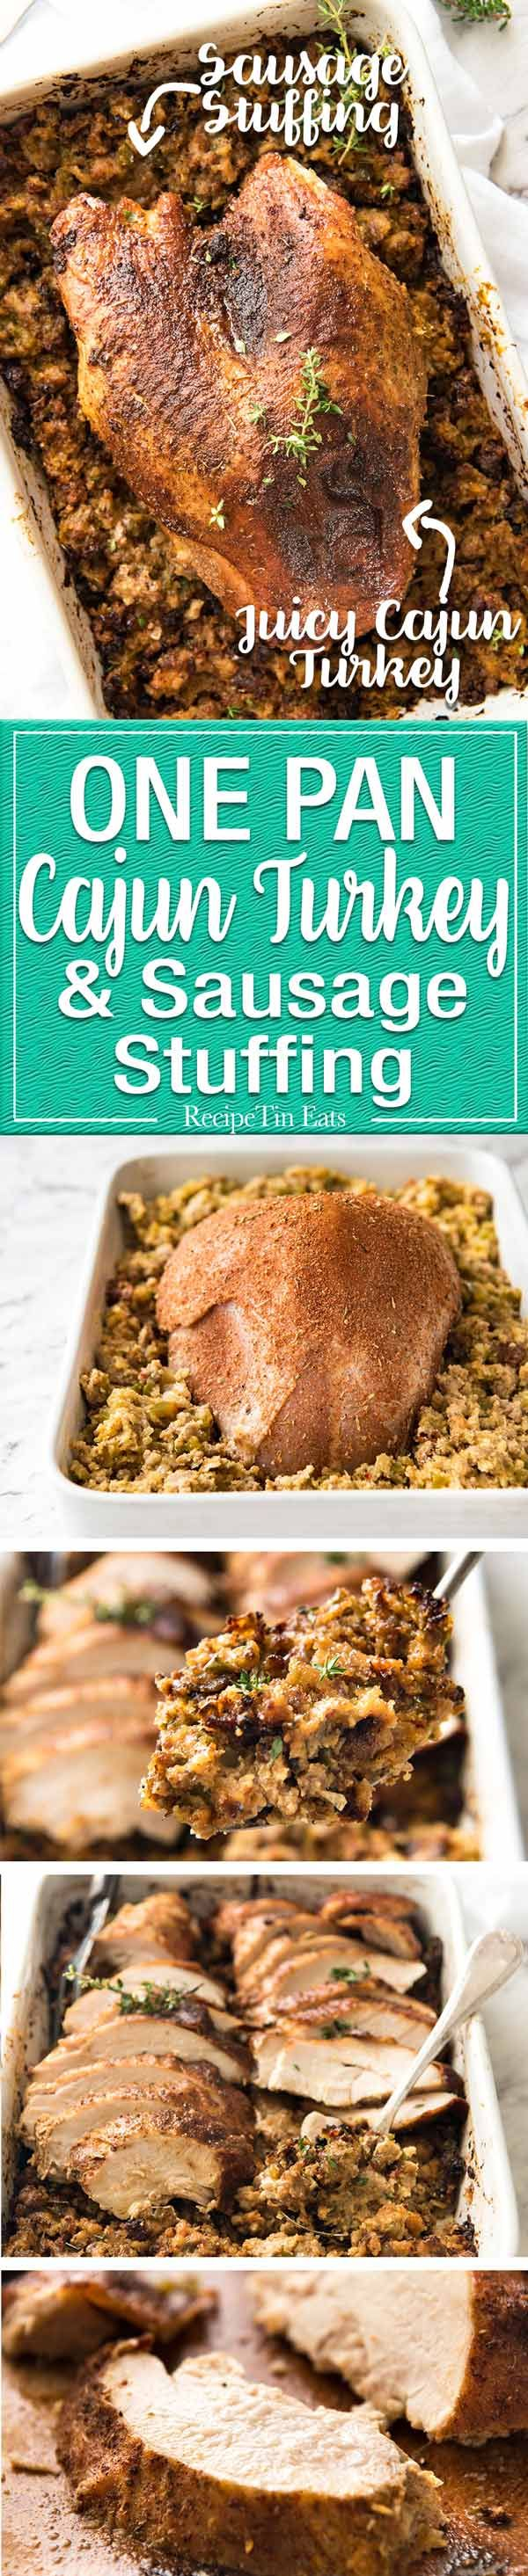 This Cajun dry brined turkey breast is baked in the same roasting pan as the Dressing / Stuffing so it's extra juicy and moist! A chef recipe, this Cajun Baked Turkey Breast with Dressing is easy and spectacular. EPIC ONE PAN COOKING for a Thanksgiving turkey! www.recipetineats.com